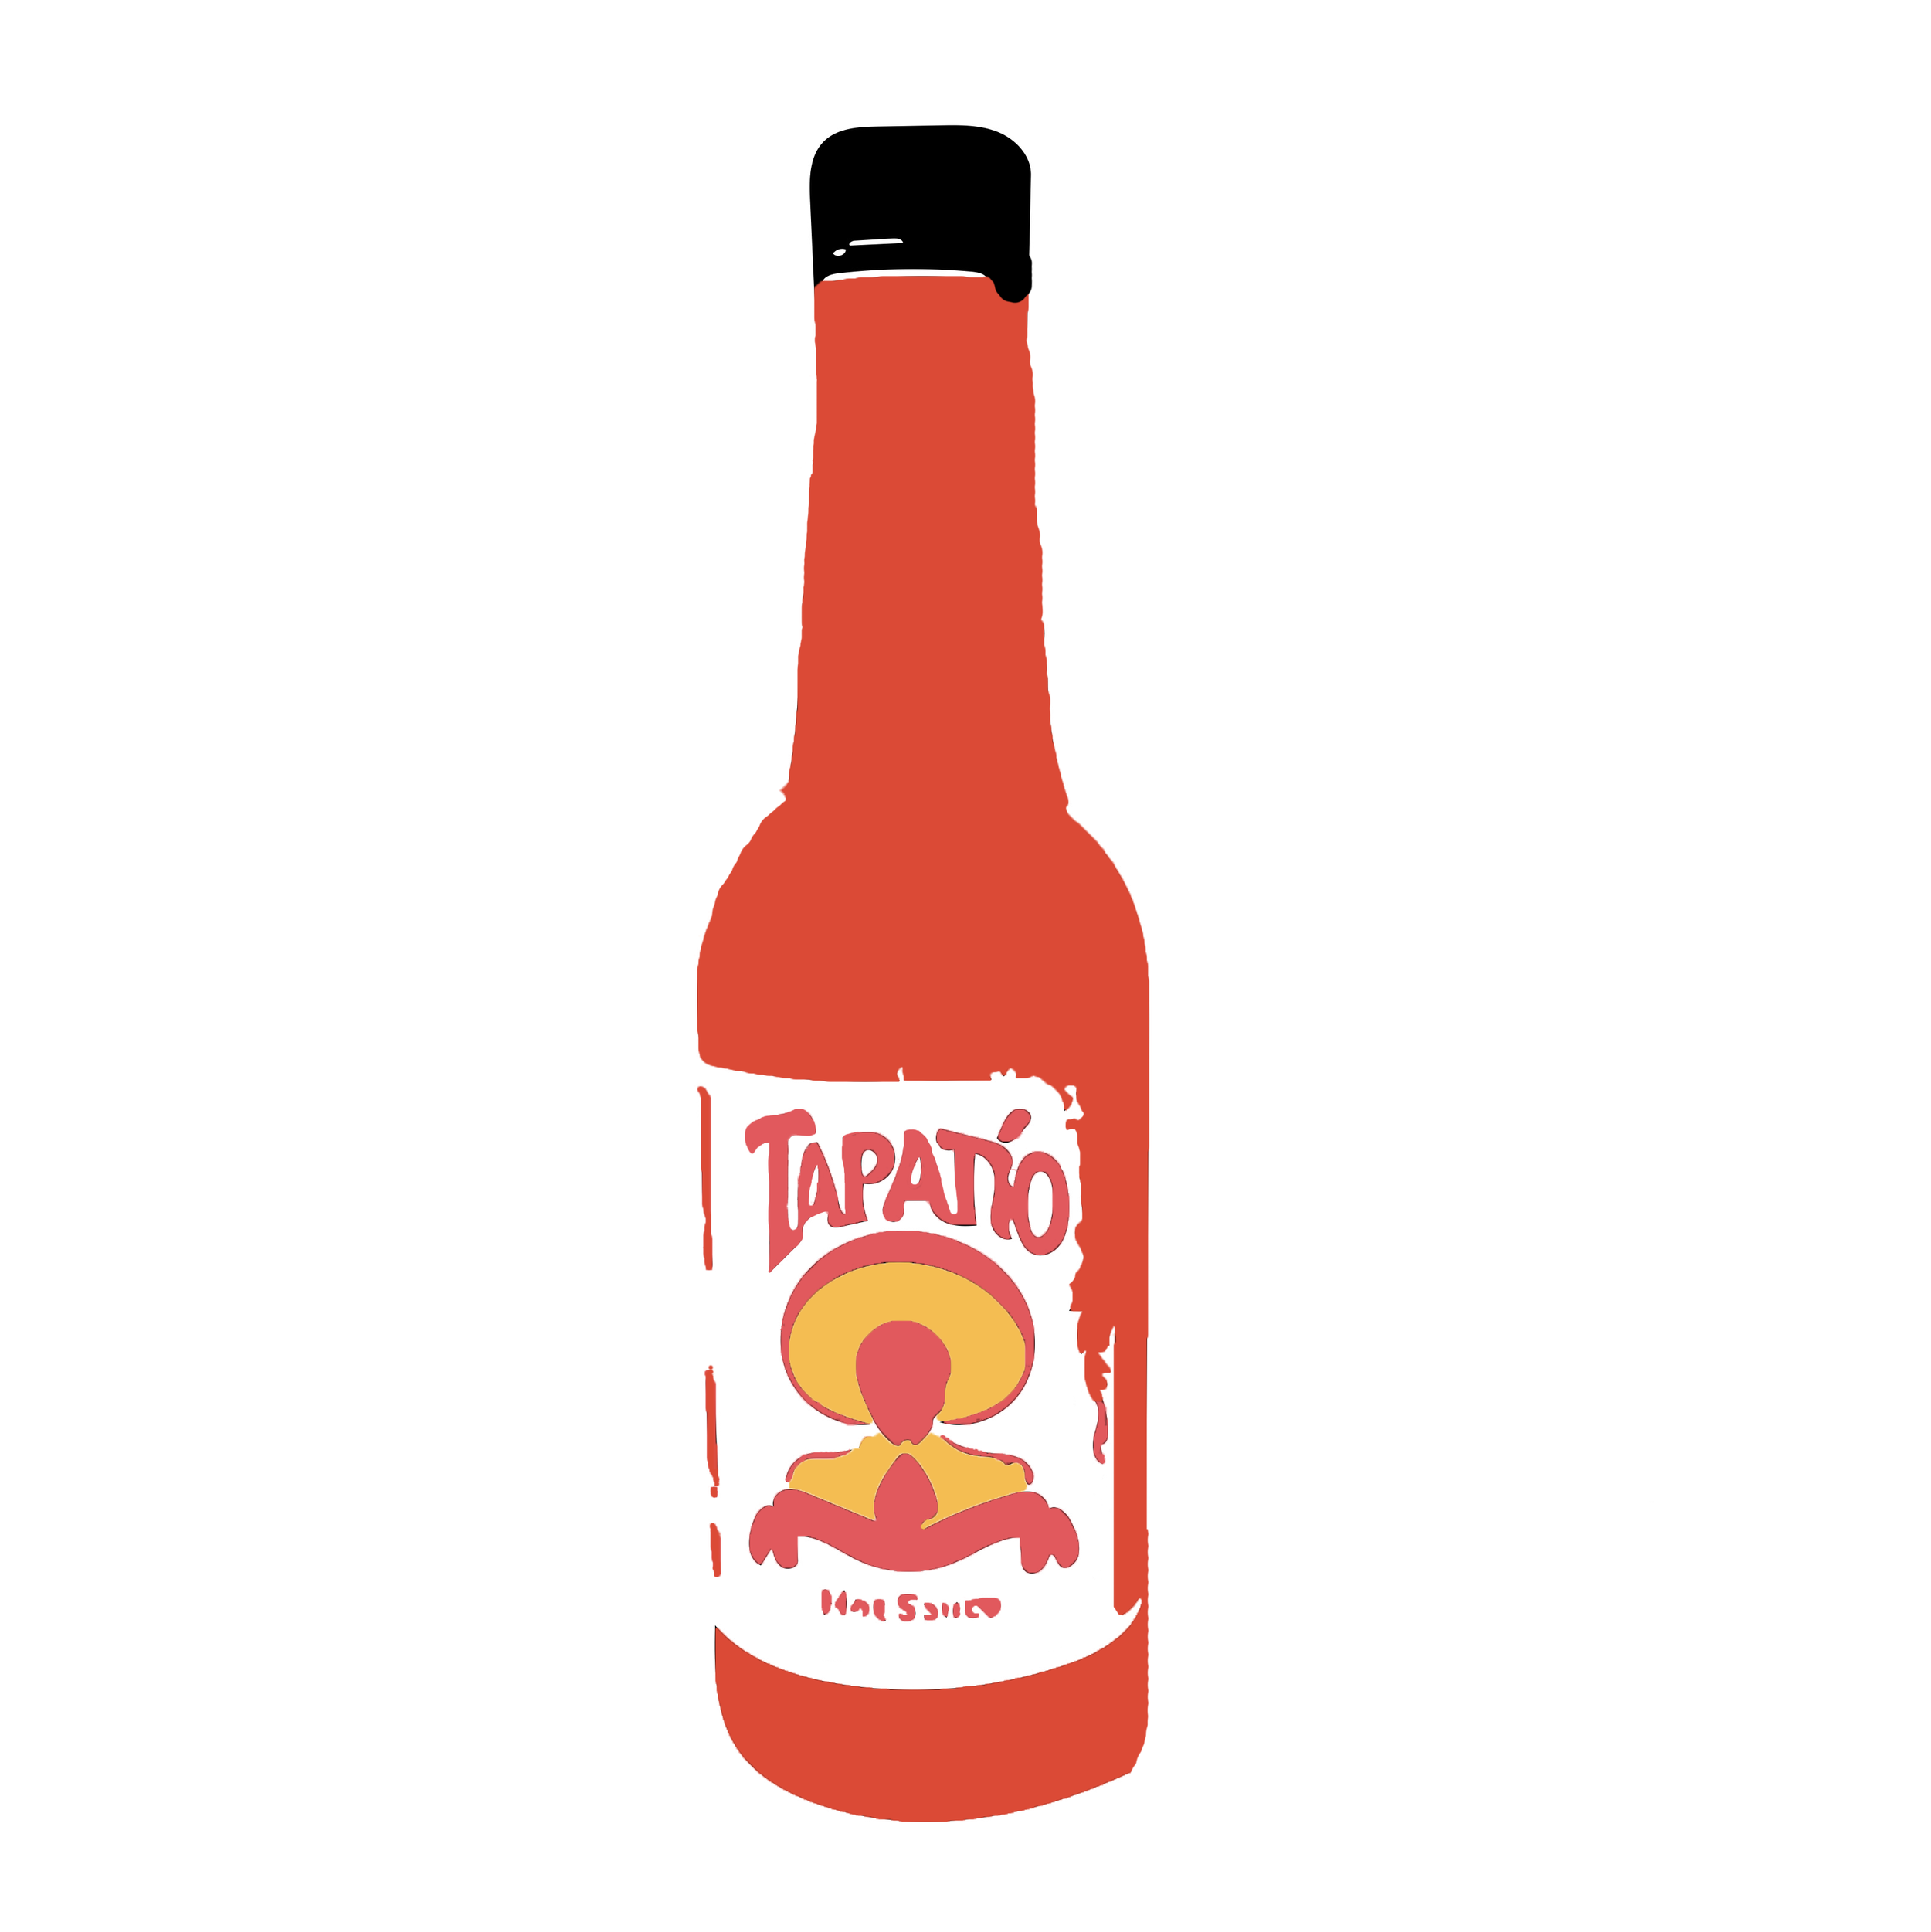 Tapatio.png